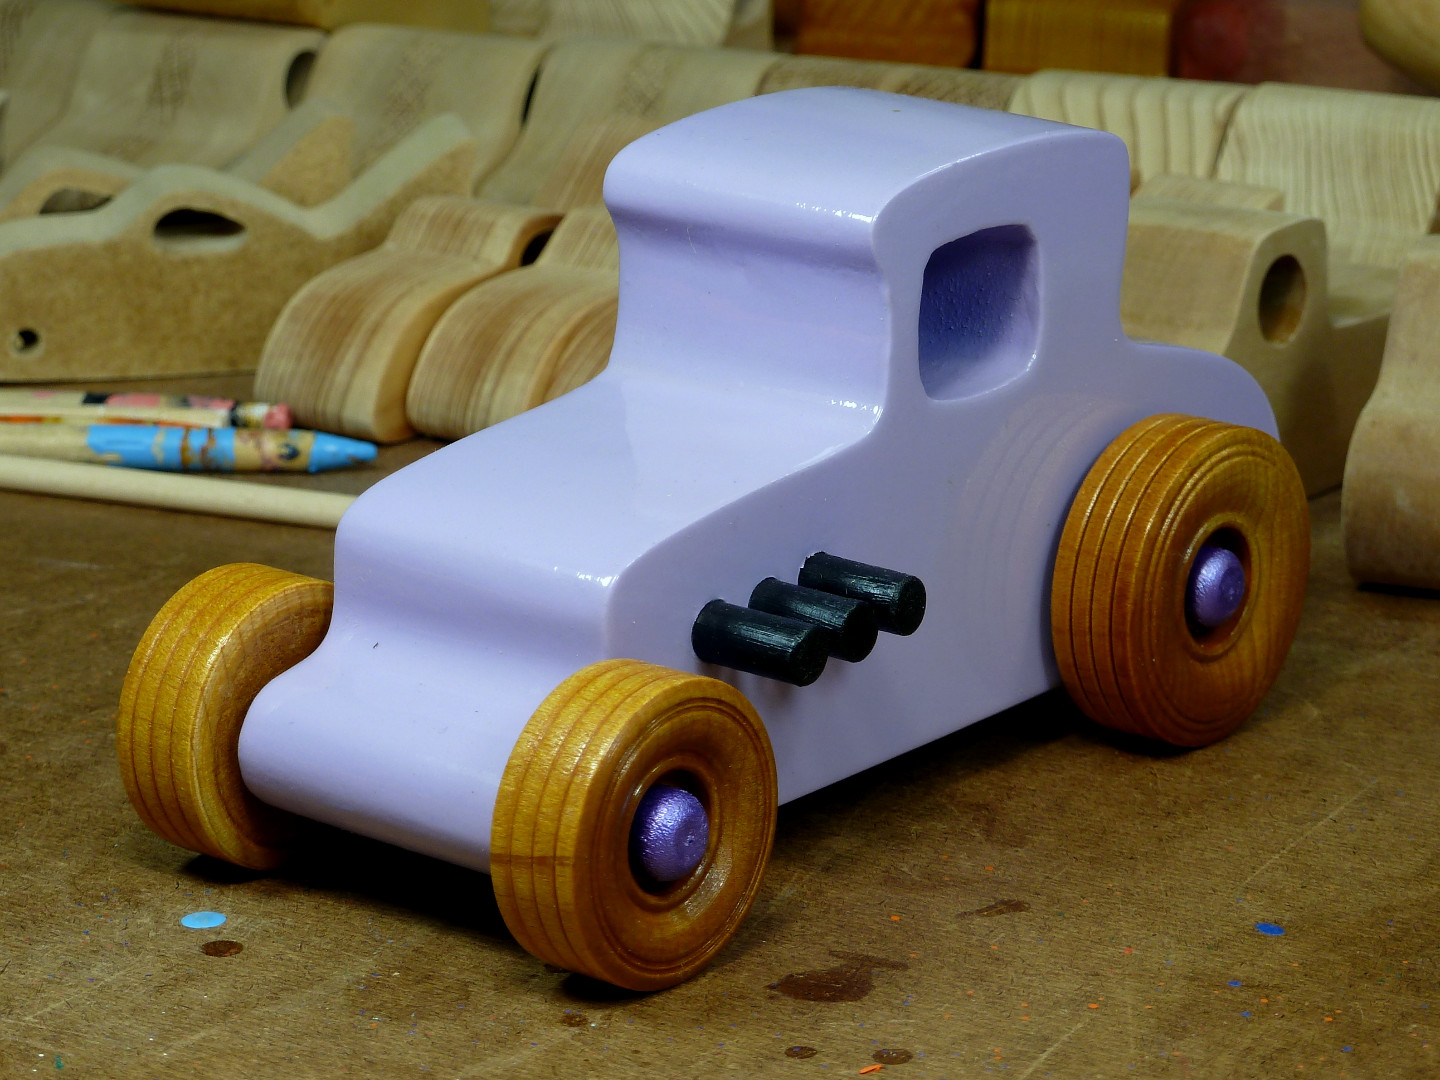 20170522-190114 Wooden Toy Car - Hot Rod Freaky Ford - 27 T Coupe - MDF - Lavender - Amber Shellac - Metallic Purple 02.jpg